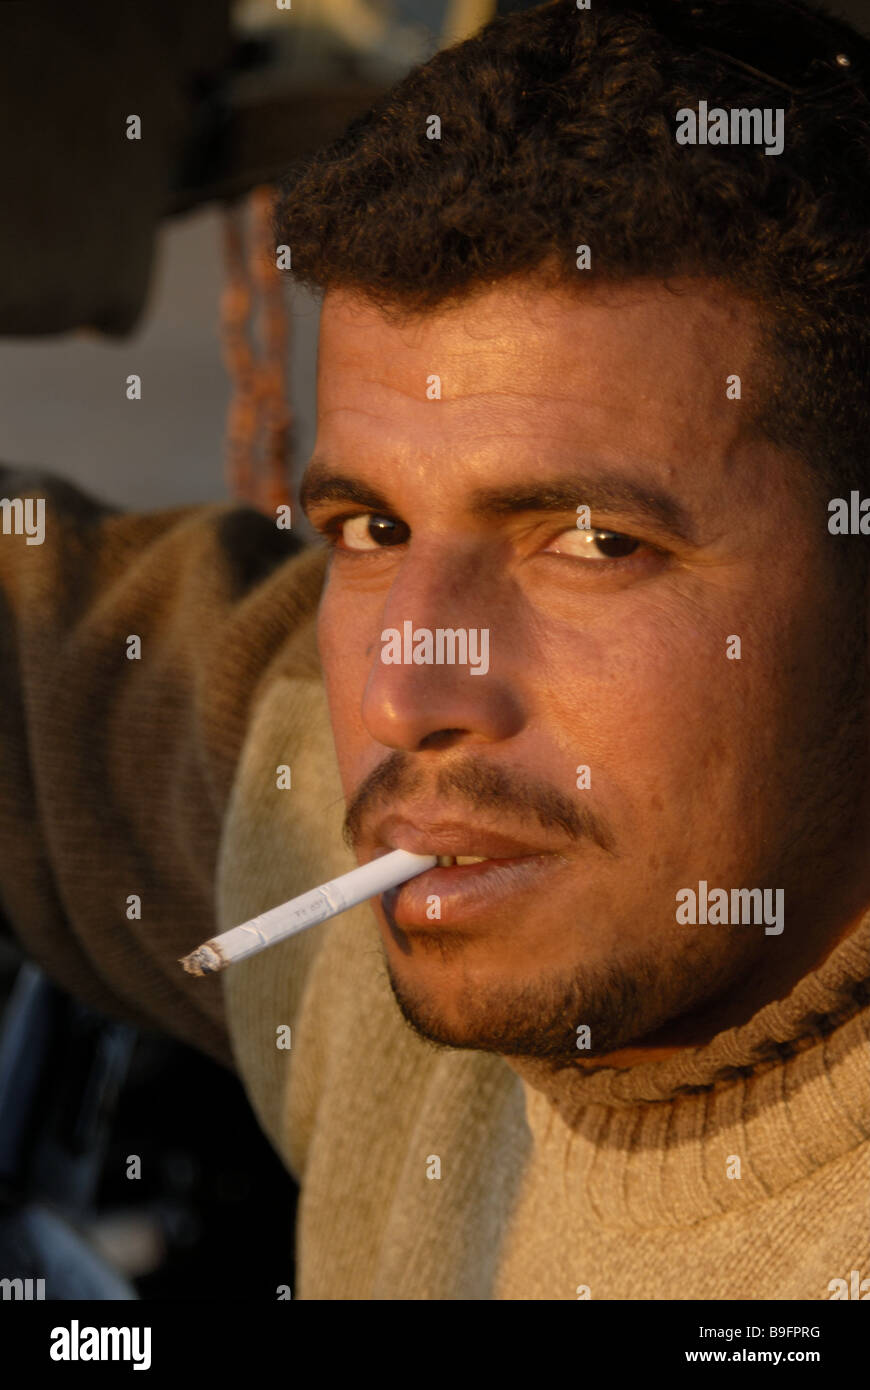 Egypt man cigarette smokes portrait broached Africa people native Egyptians smokers seriously self-confidence evening - Stock Image